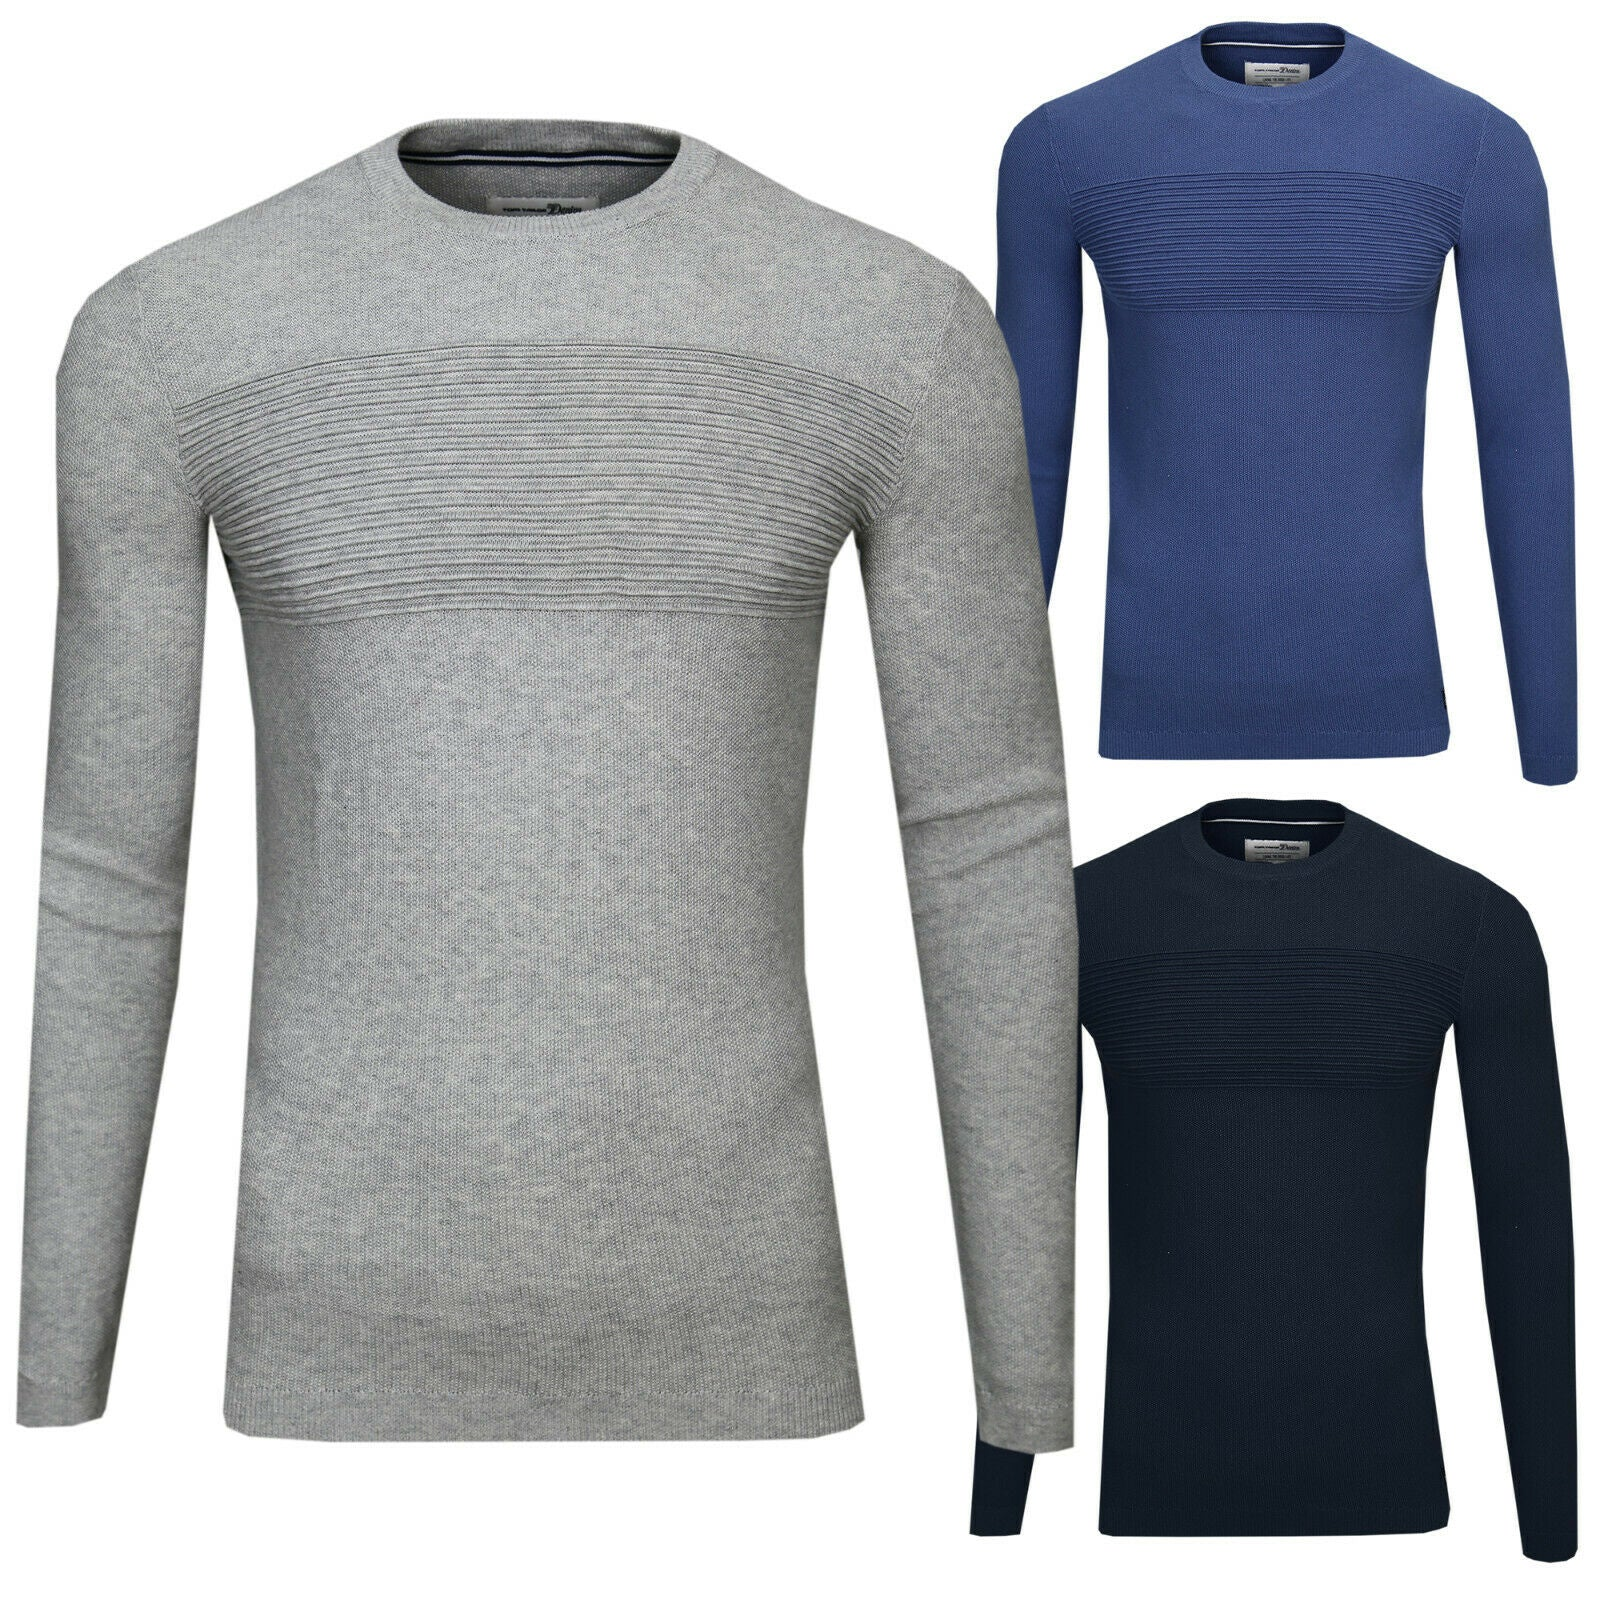 TOM TAILOR Structured Sweat Basic Strickpullover, Struktur Mix, Langarm, Rundhal